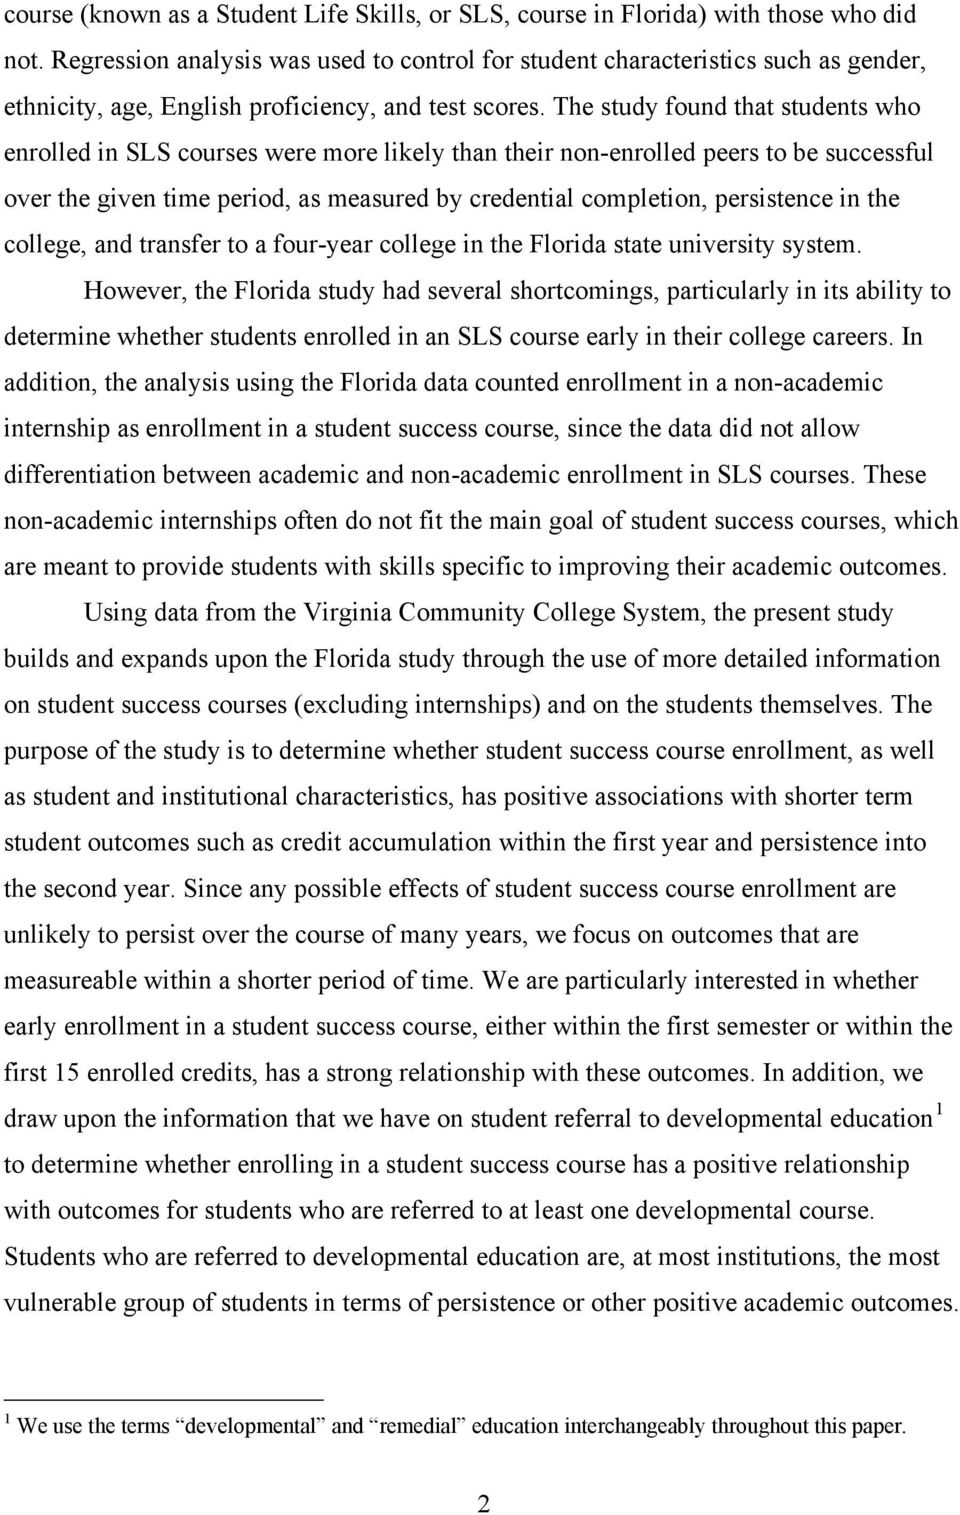 The study found that students who enrolled in SLS courses were more likely than their non-enrolled peers to be successful over the given time period, as measured by credential completion, persistence